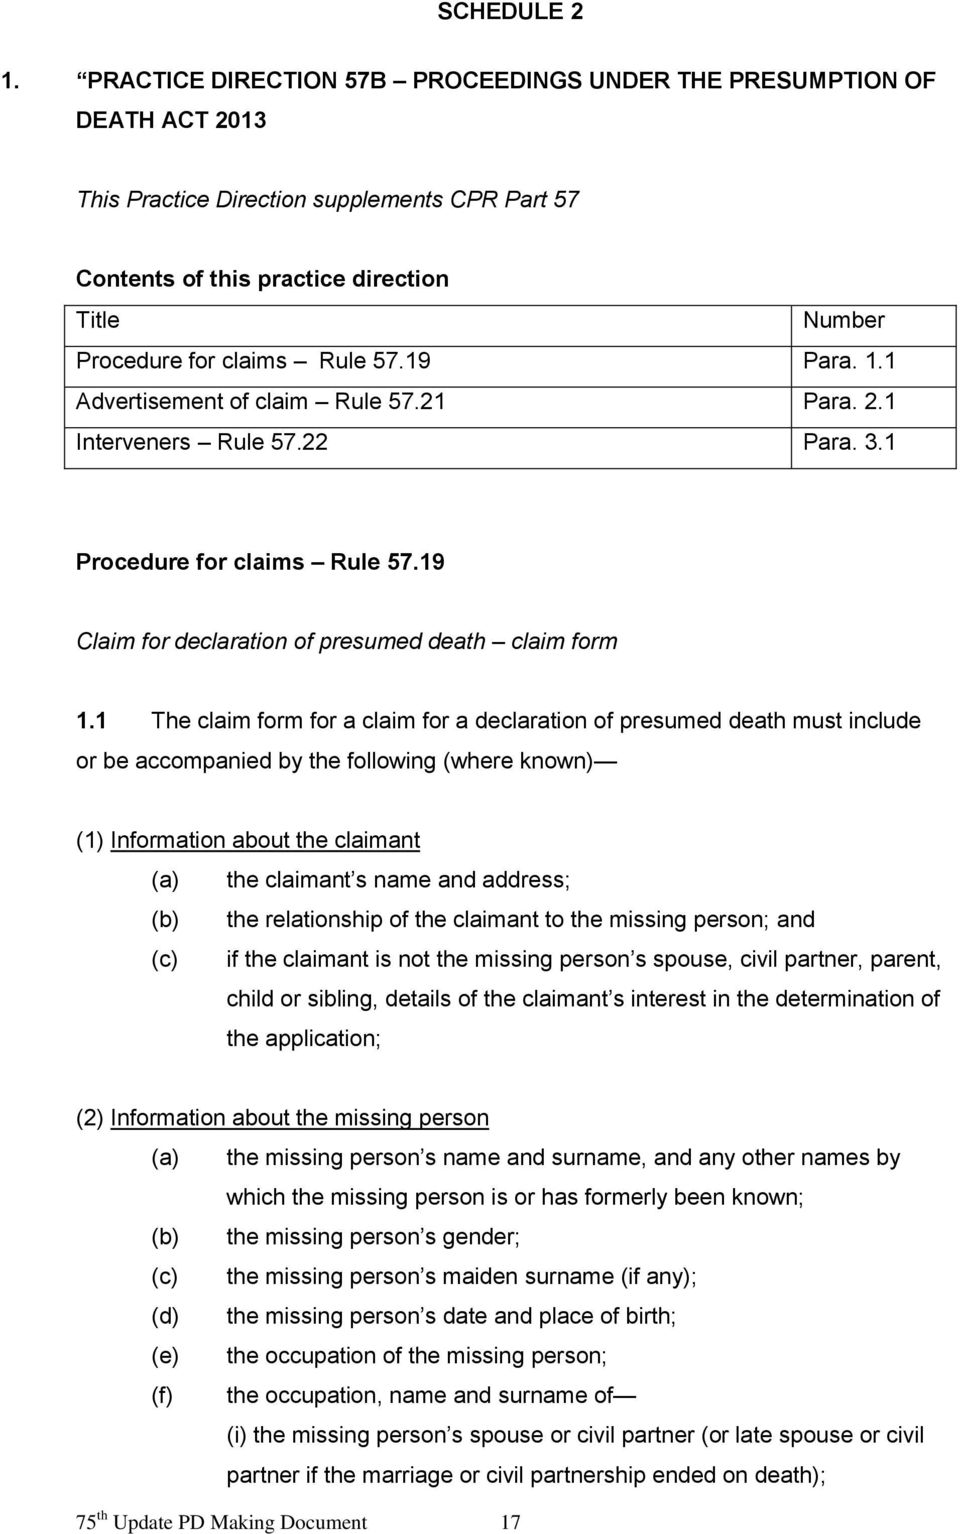 57.19 Para. 1.1 Advertisement of claim Rule 57.21 Para. 2.1 Interveners Rule 57.22 Para. 3.1 Procedure for claims Rule 57.19 Claim for declaration of presumed death claim form 1.